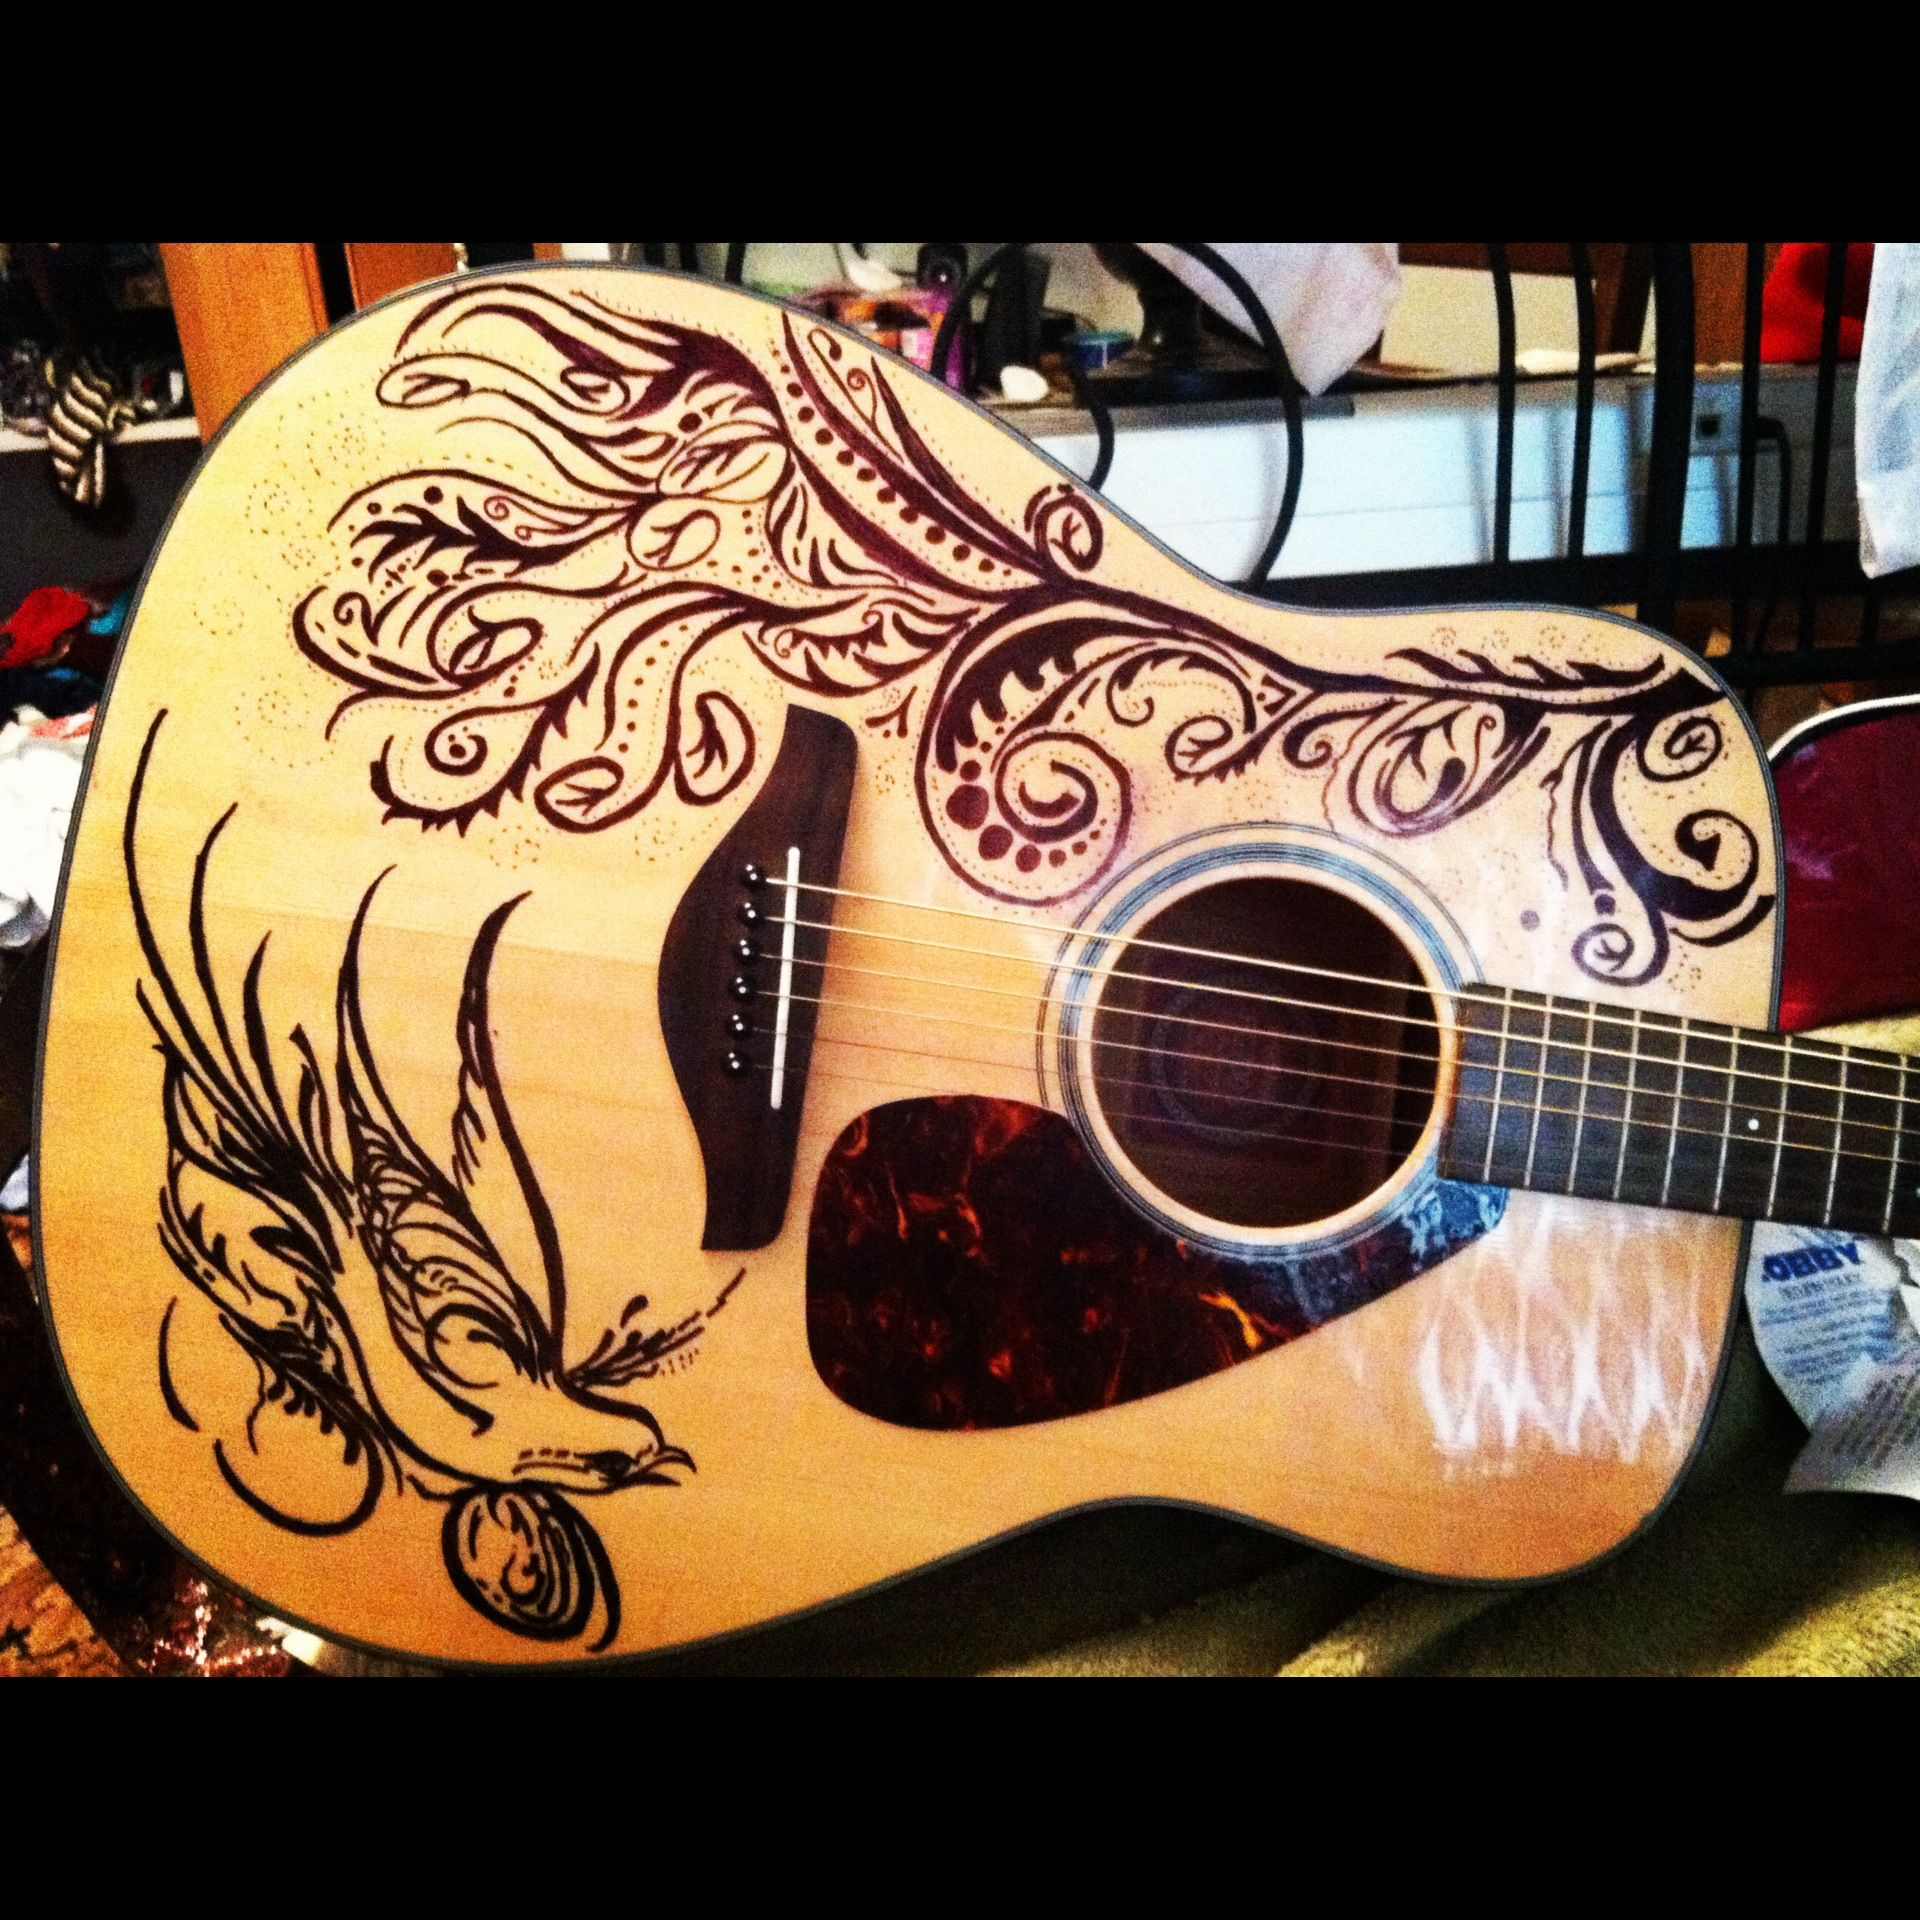 This Is My Guitar I Spent Forever Designing And Sketching Work Of Art On